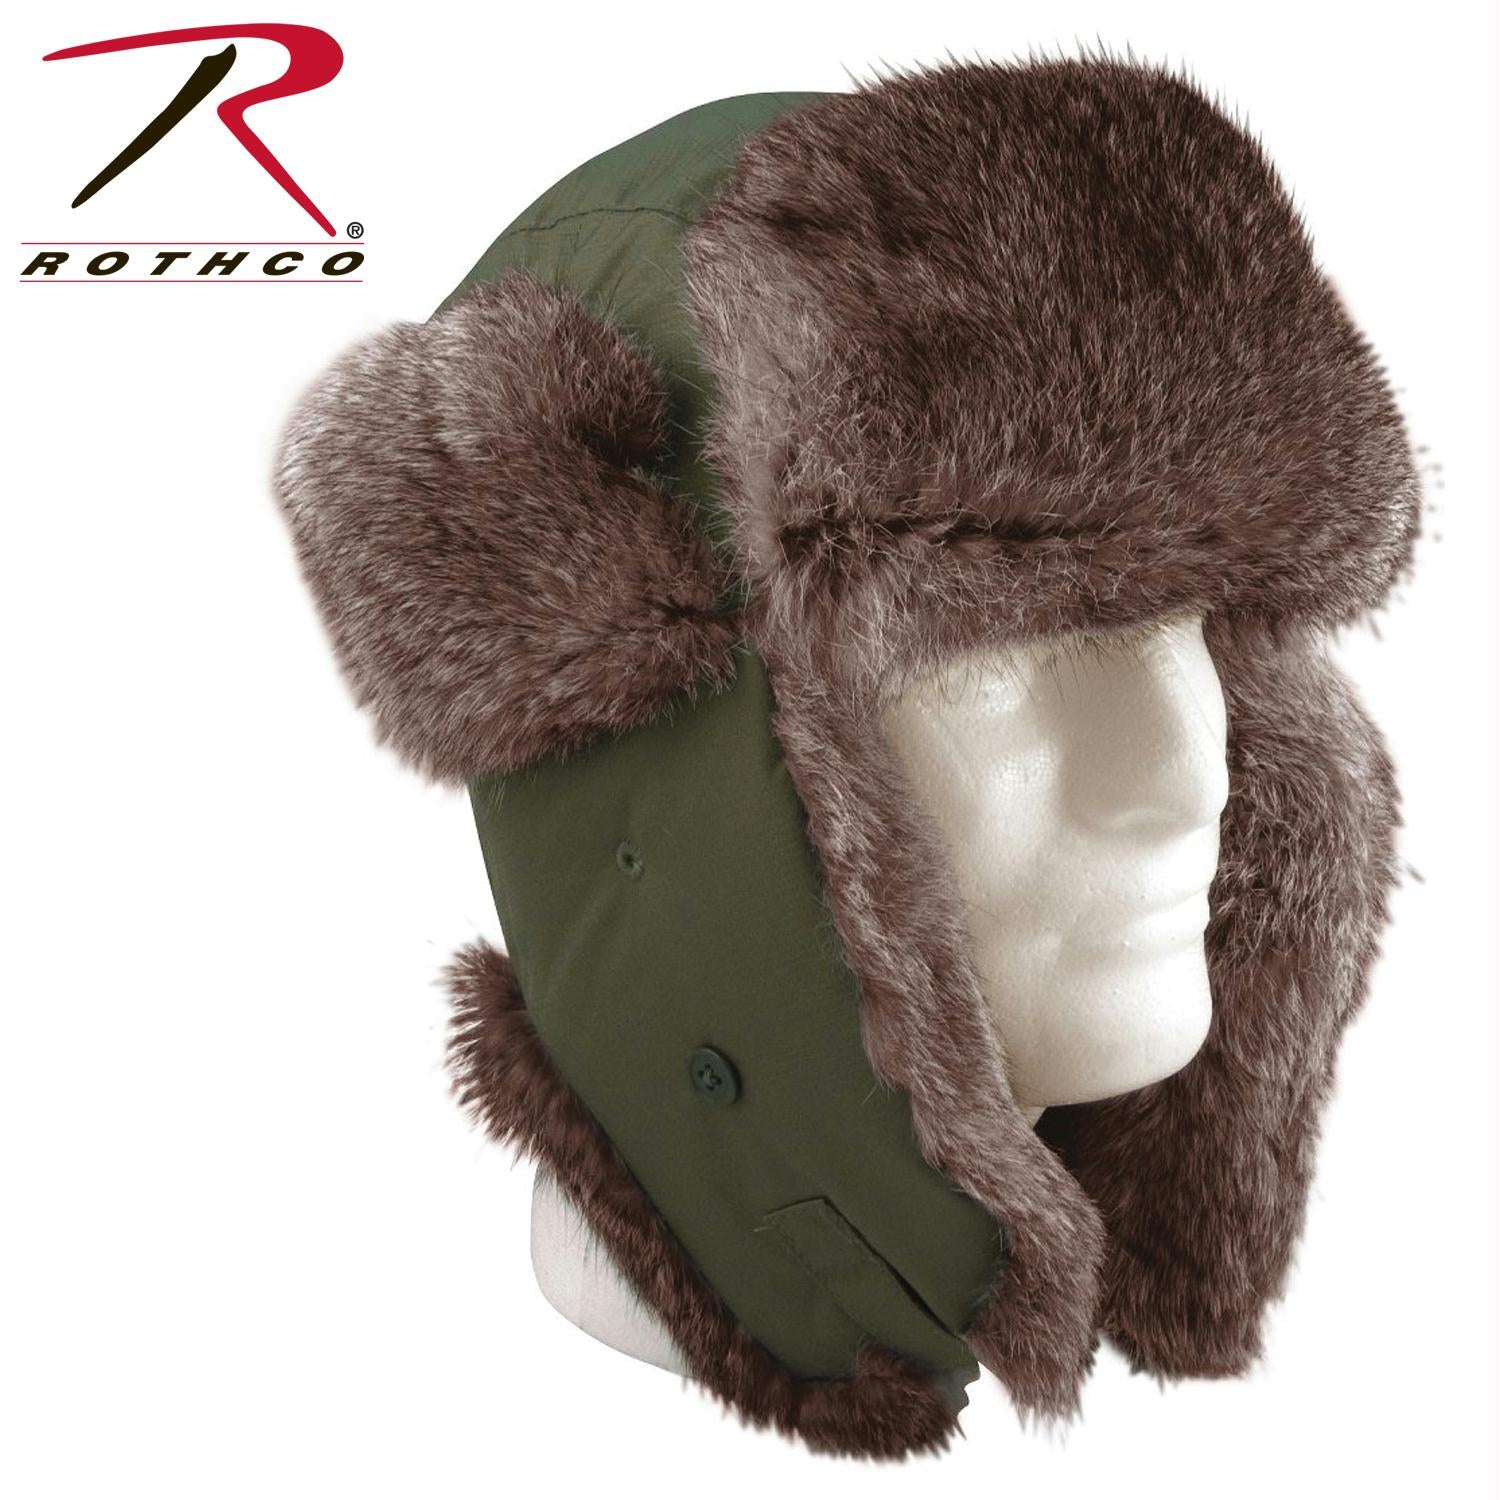 Rothco Fur Flyer's Hat - Olive Drab / 7 1/4